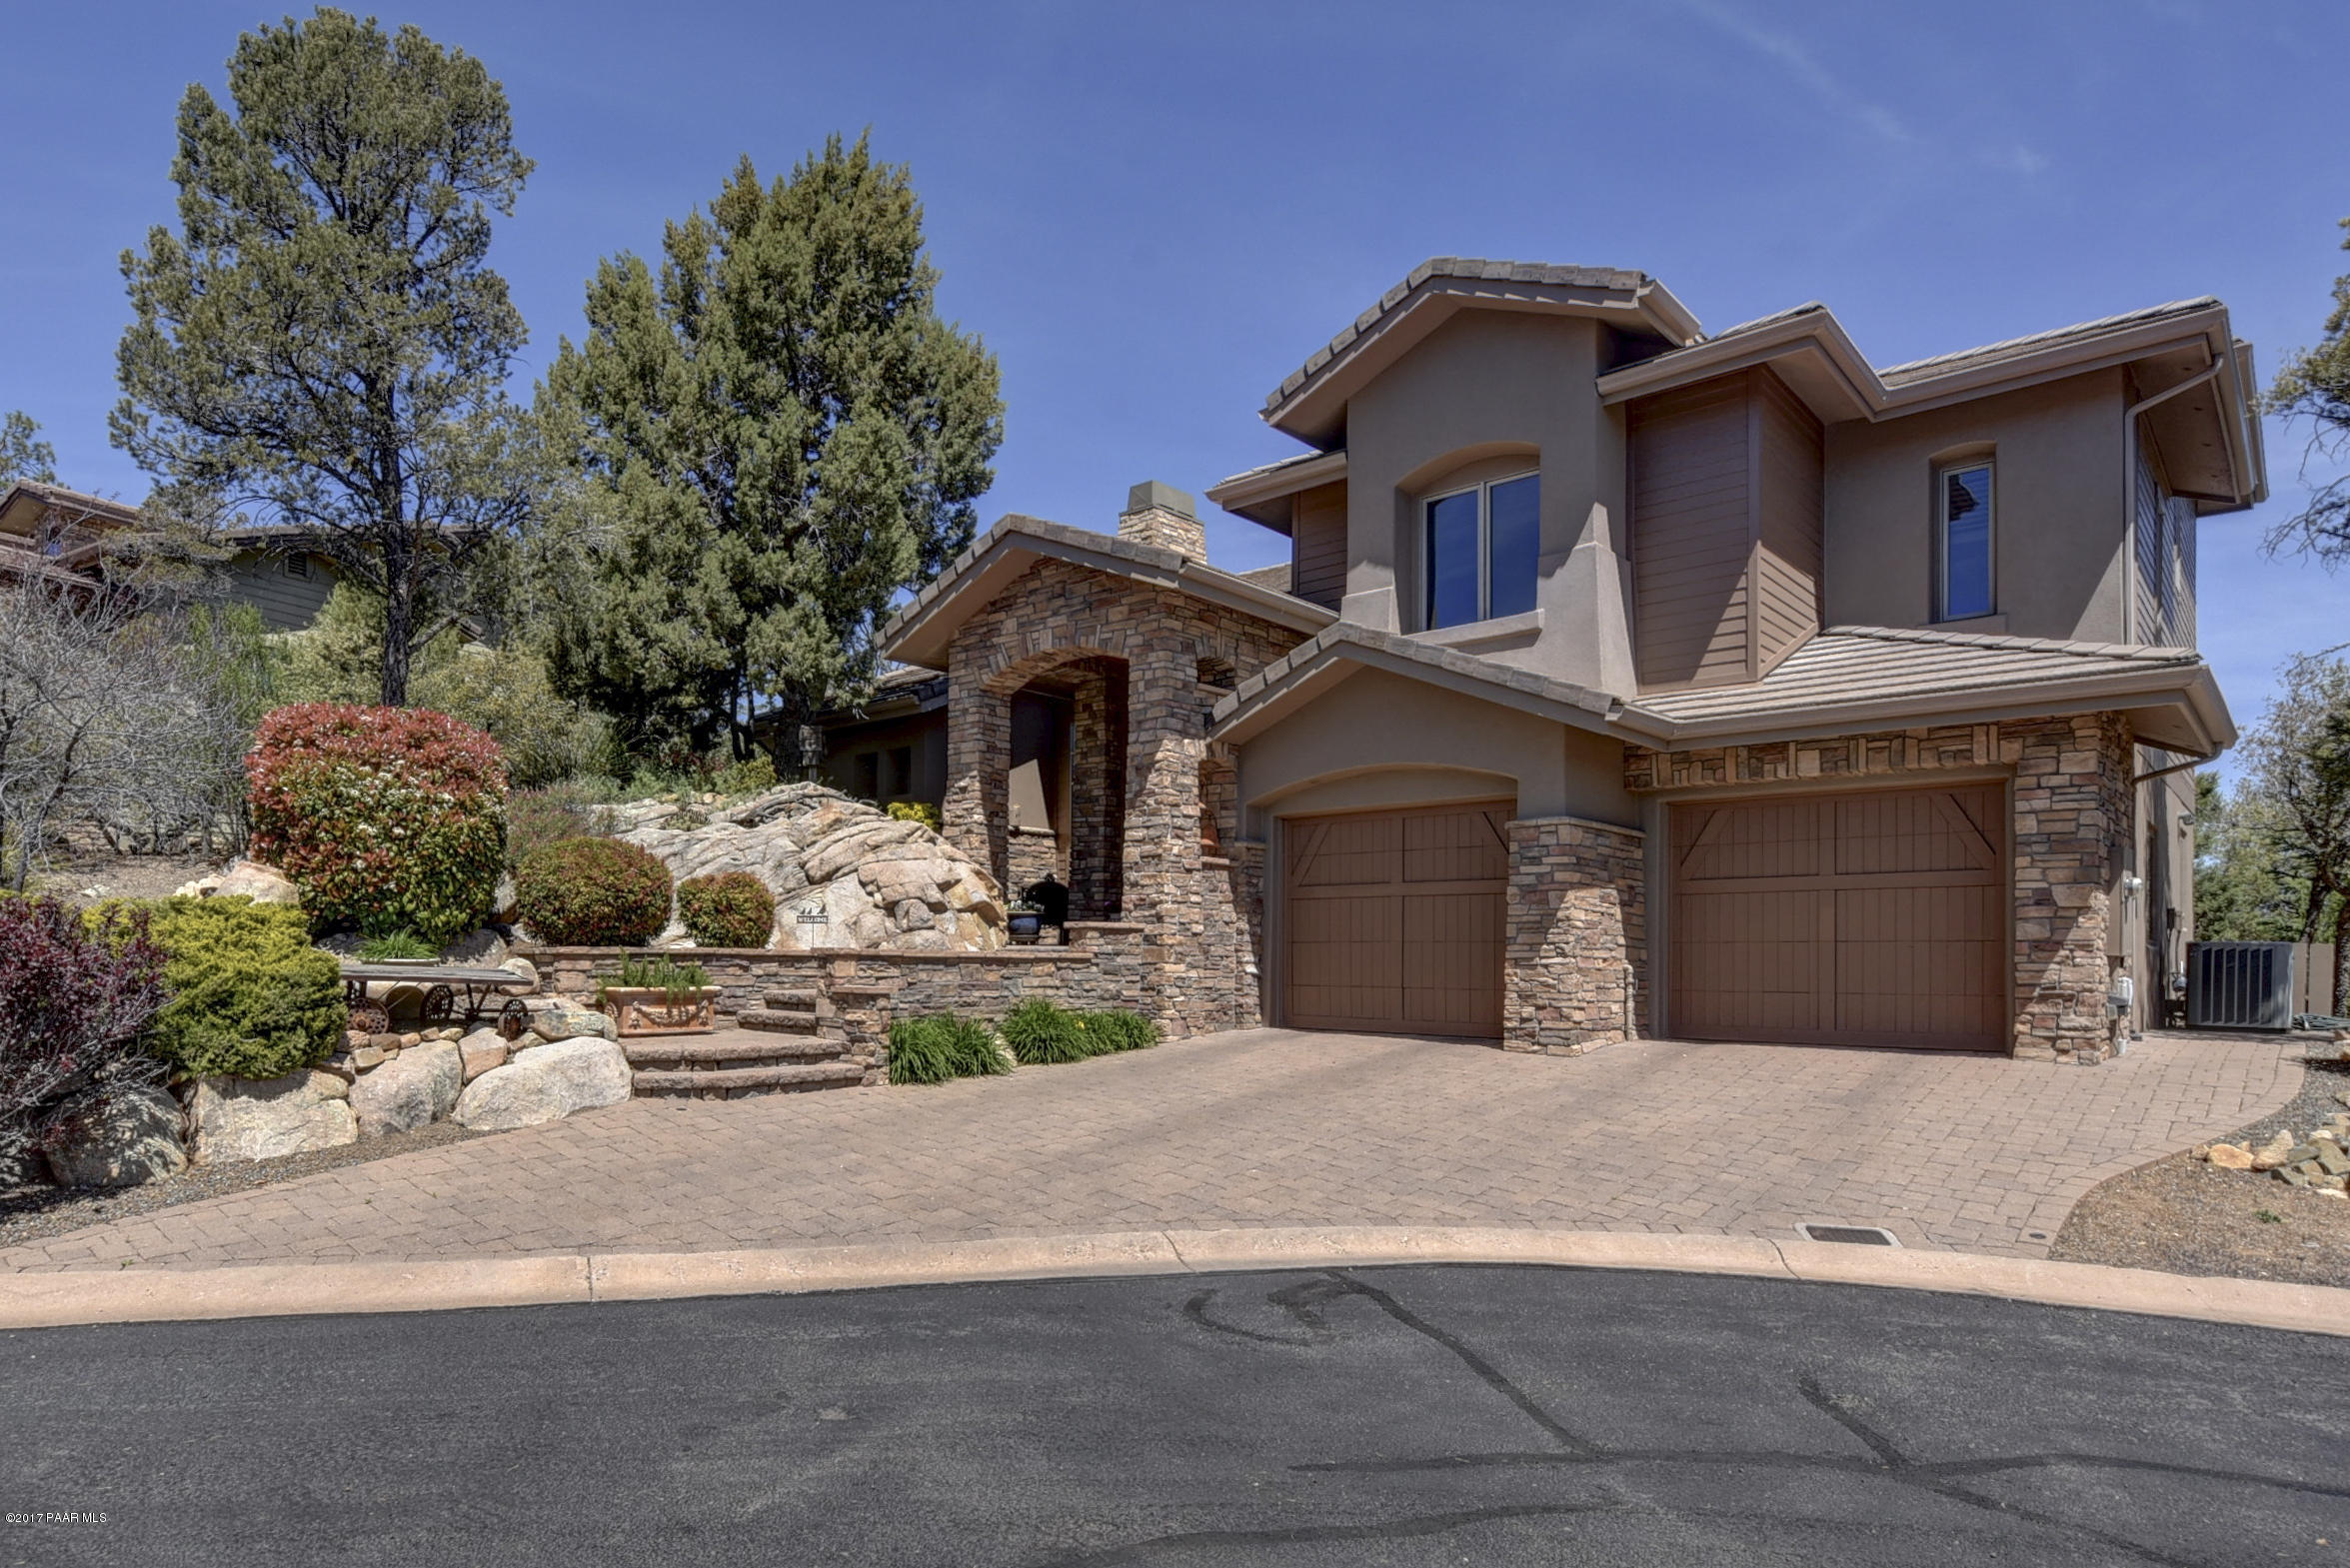 1624  Stoney Lane, Prescott Az 86303